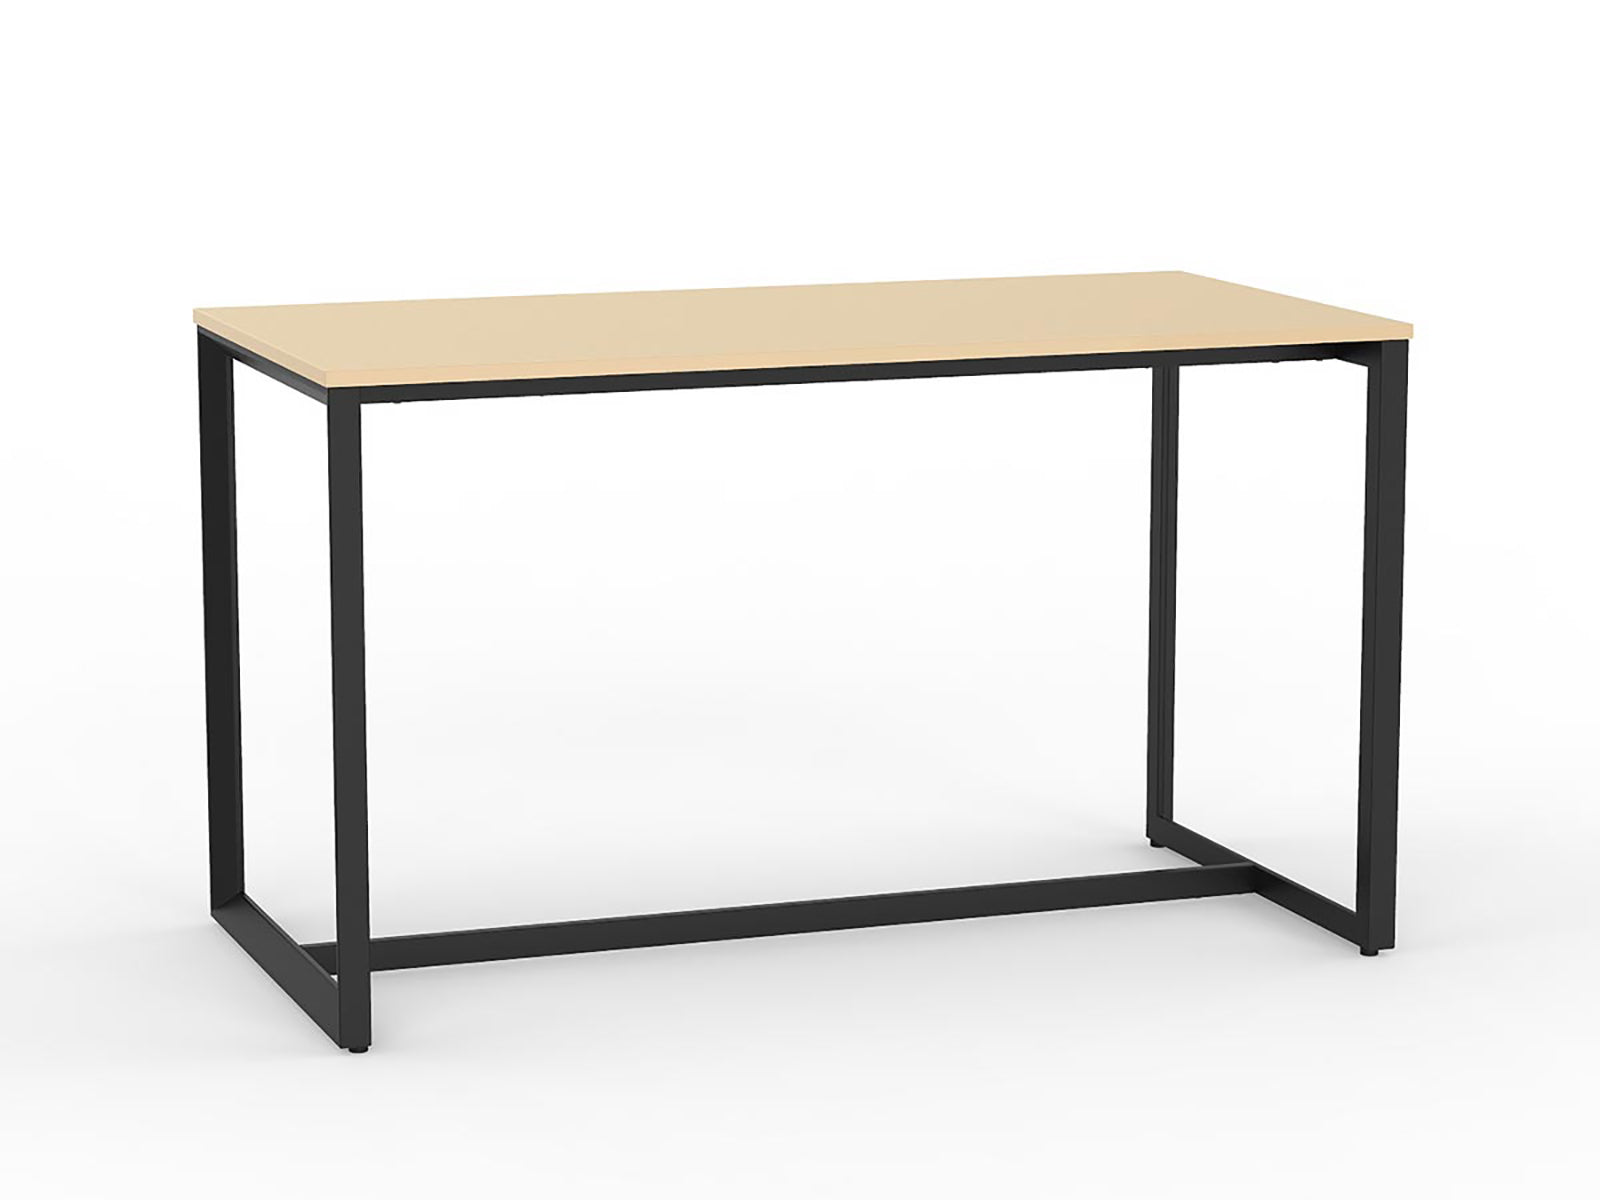 Anvil Black 1.8m Bar Leaner - Workspace Furniture Home and Office Cafe Tables